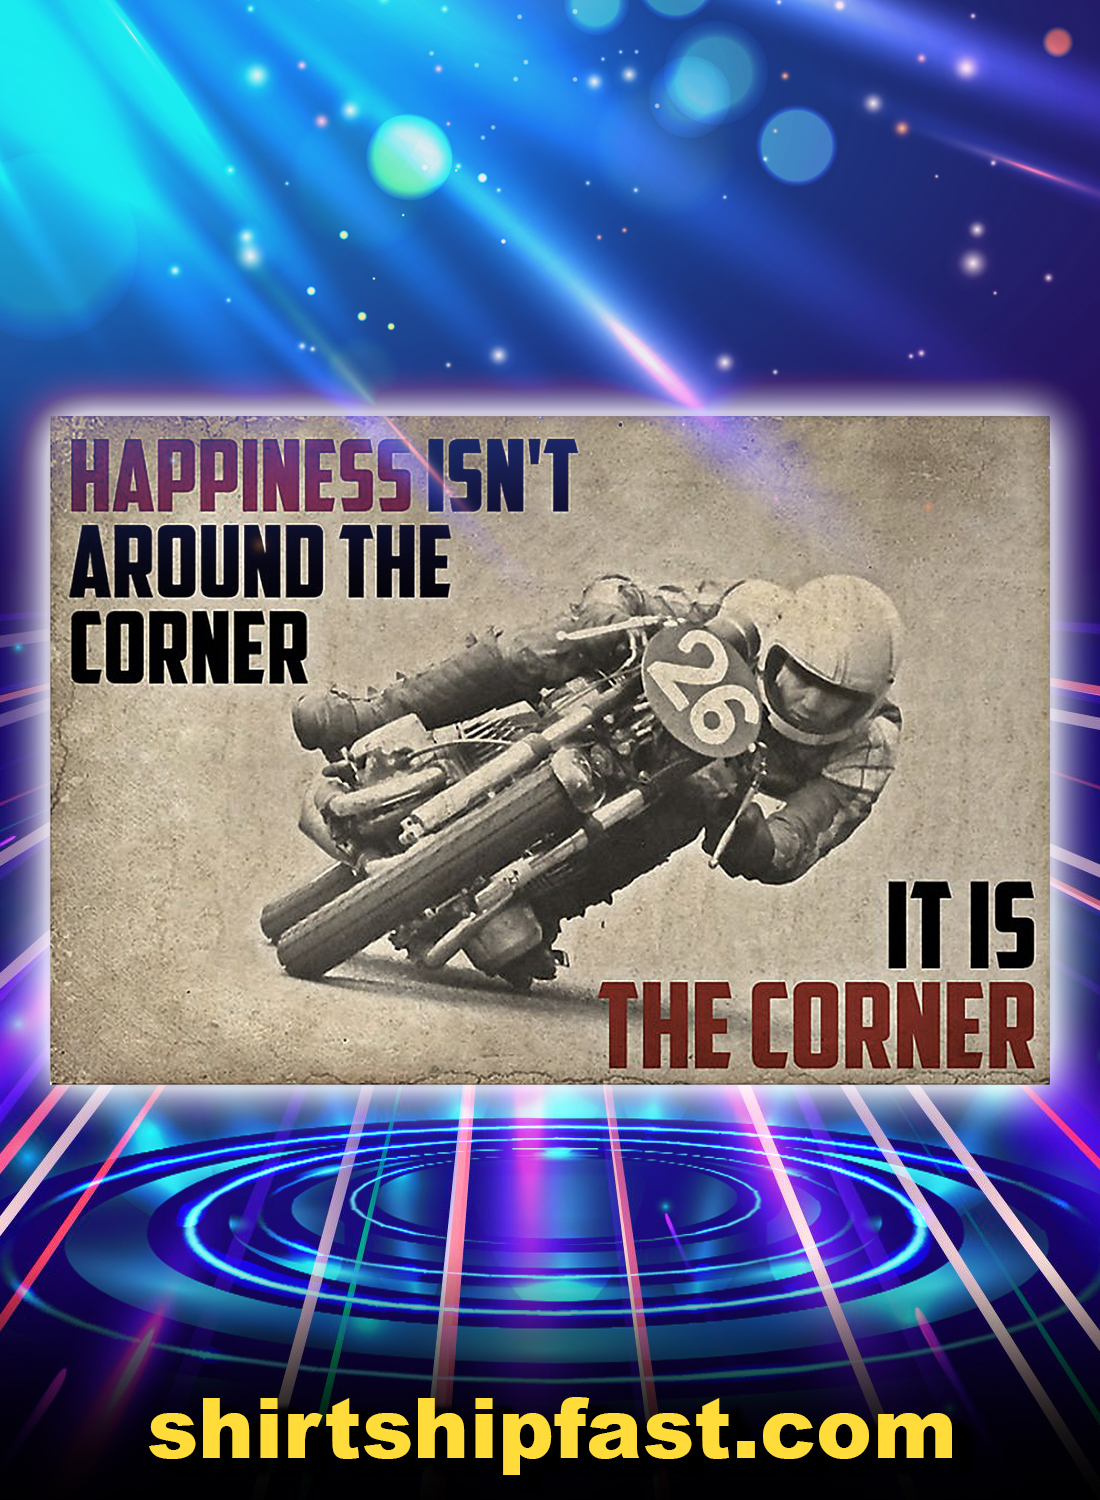 Motorcycle happiness isn't around the corner poster and canvas prints - A4